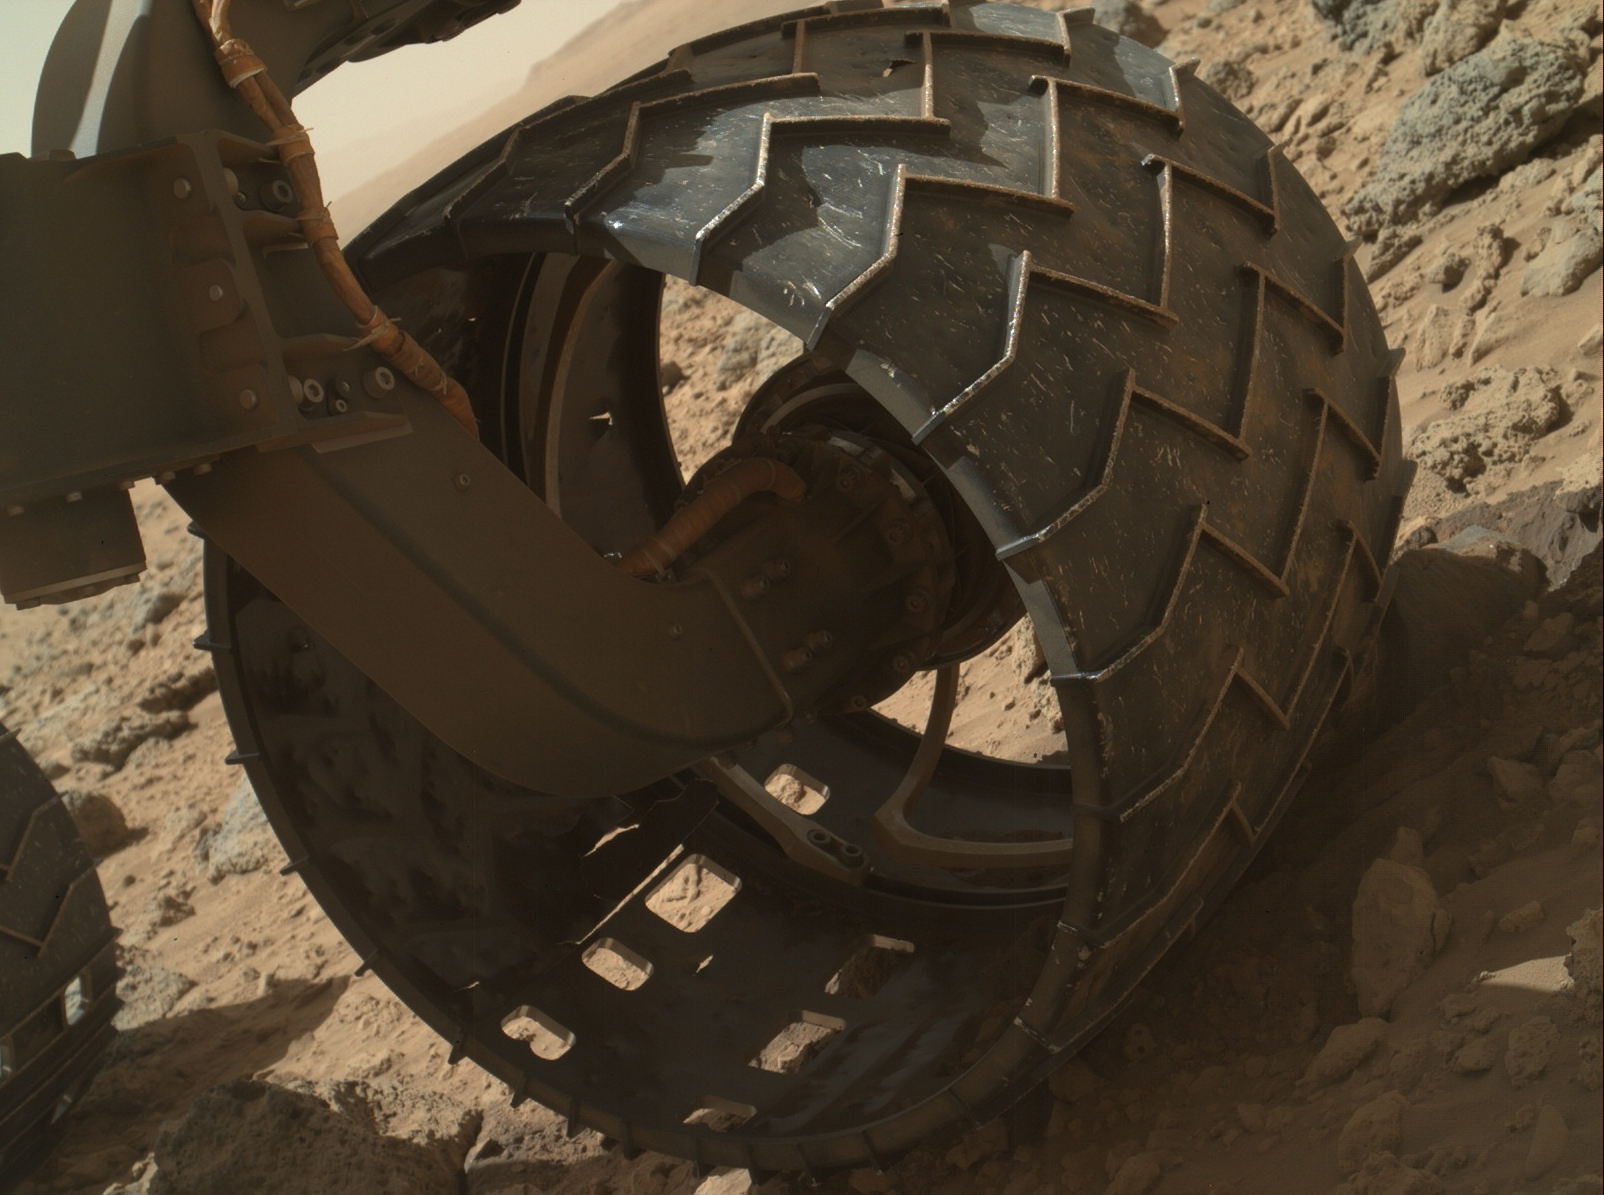 On Mars, NASA's Curiosity Rover Seeks Smoother Road to Reduce Wheel Damage